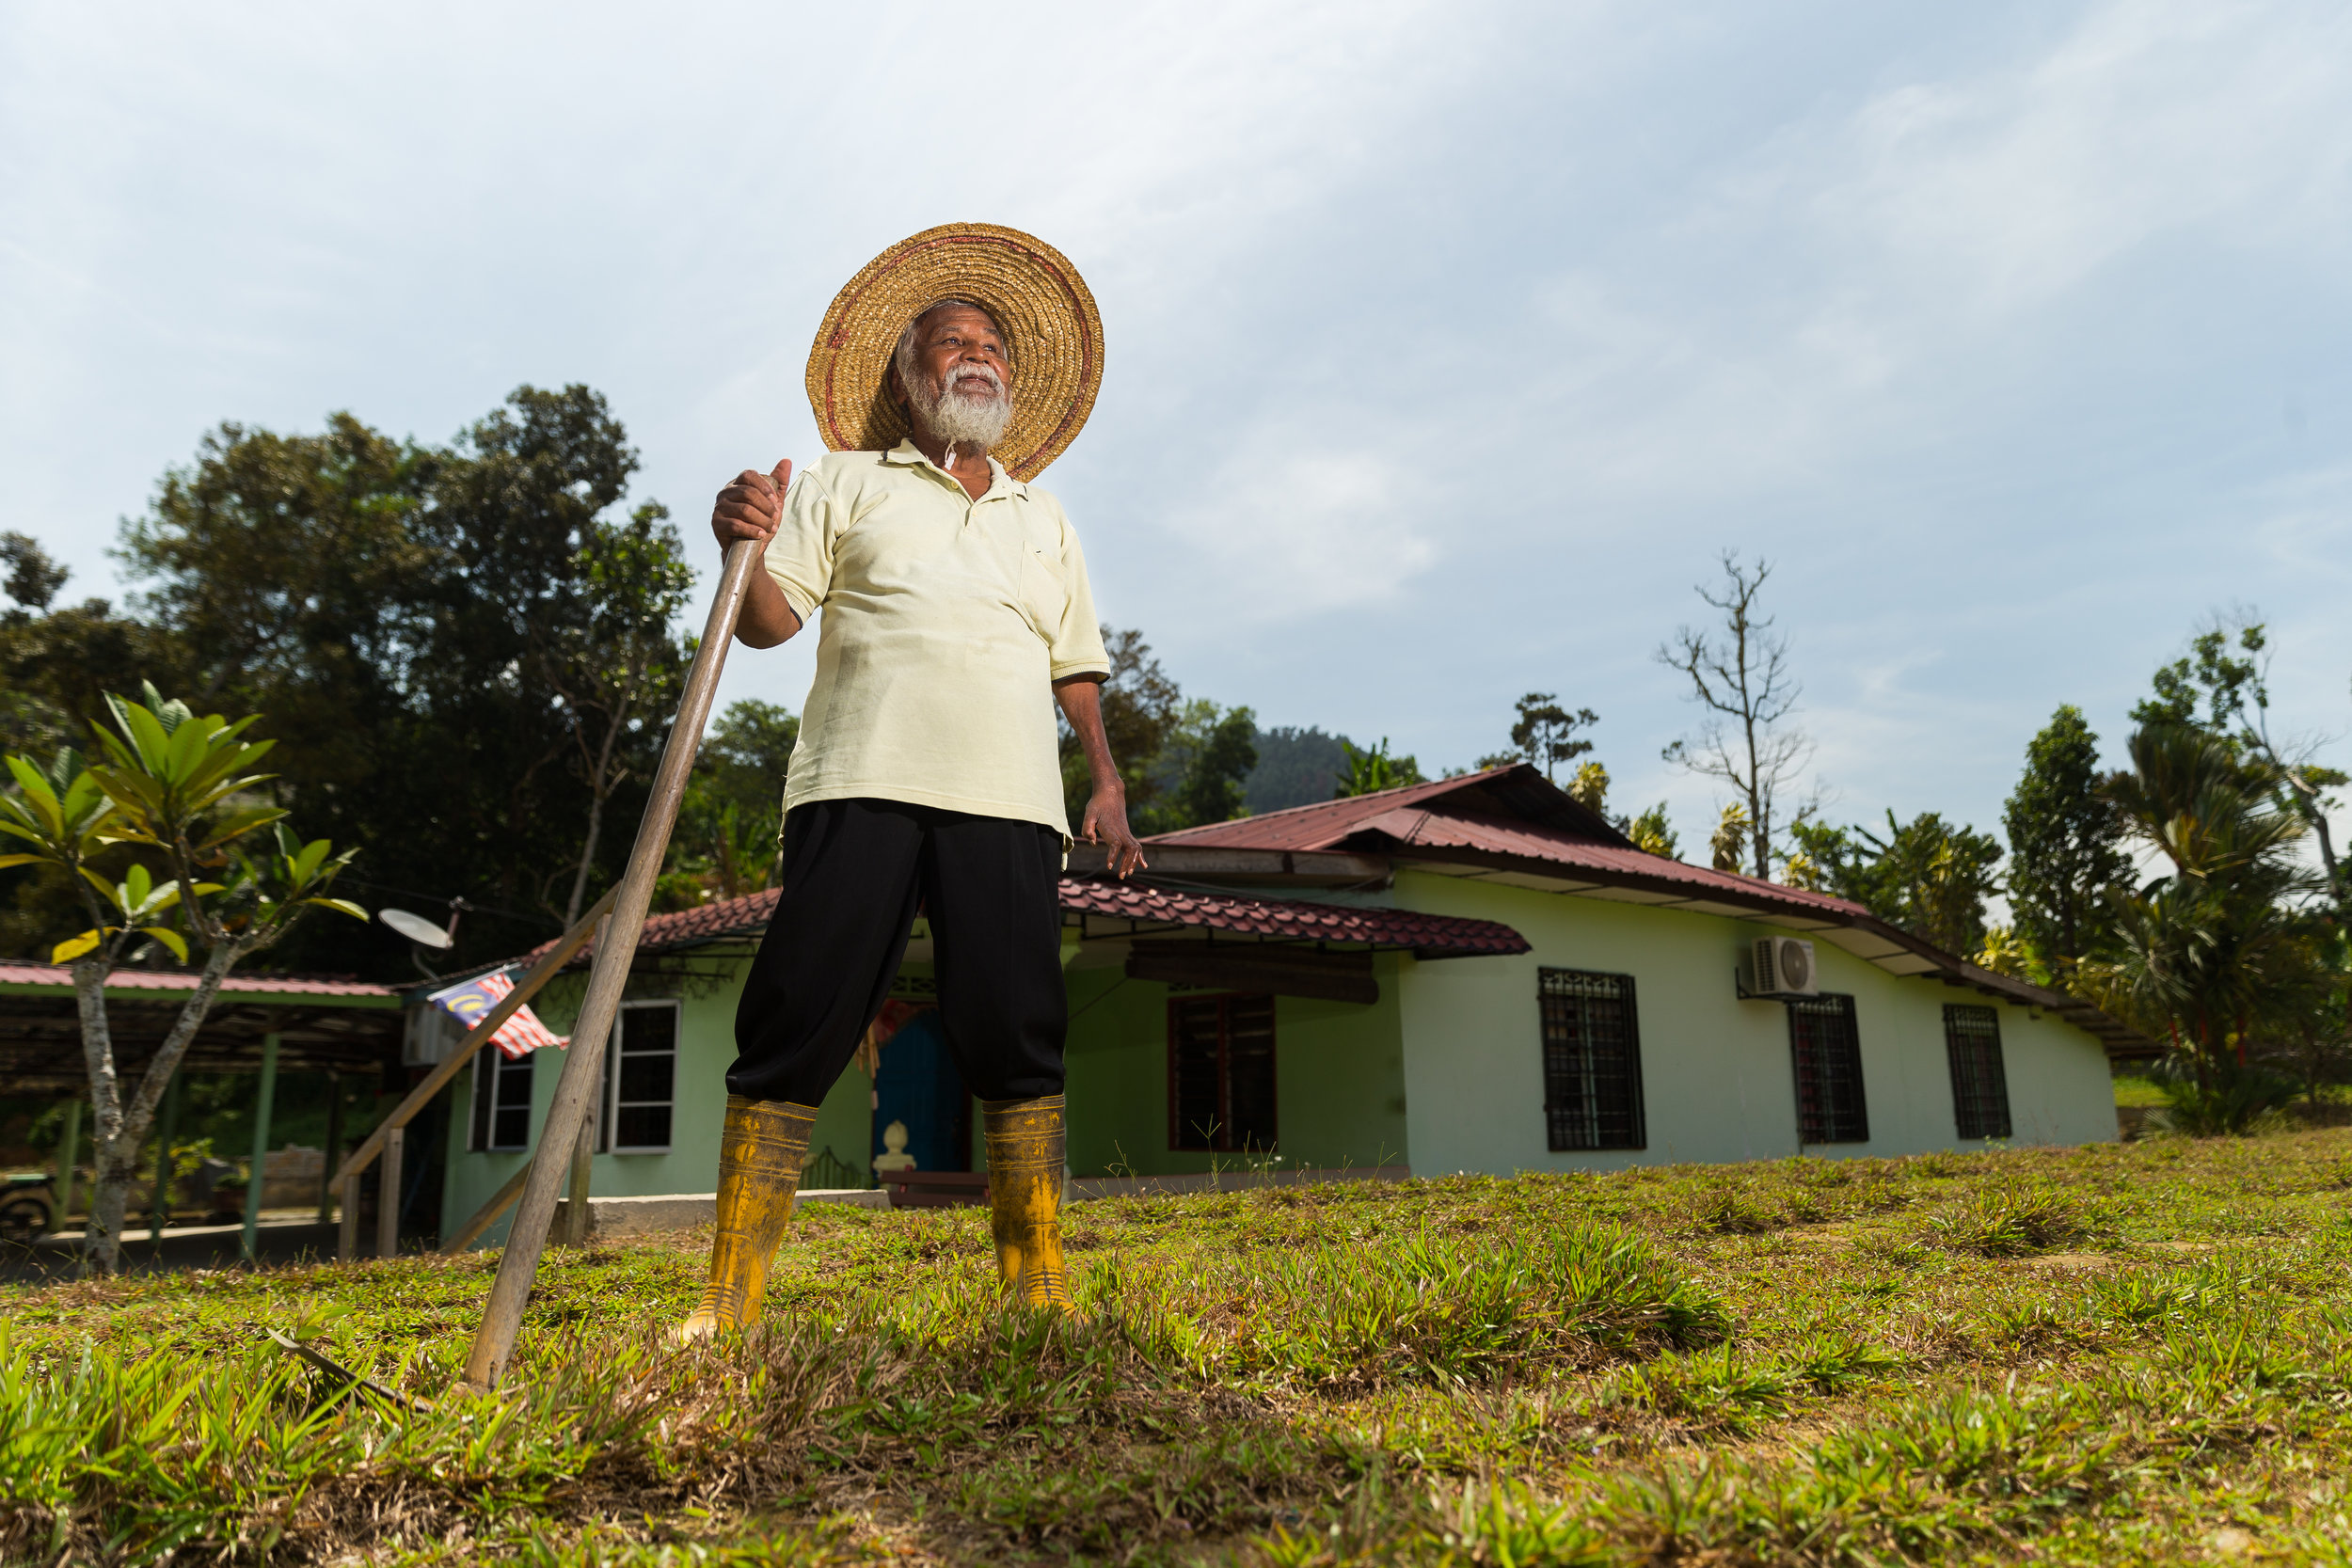 He is the pioneer who helped establish Kampung Bahagia, Bukit Lagong. (photo by Mango Loke)